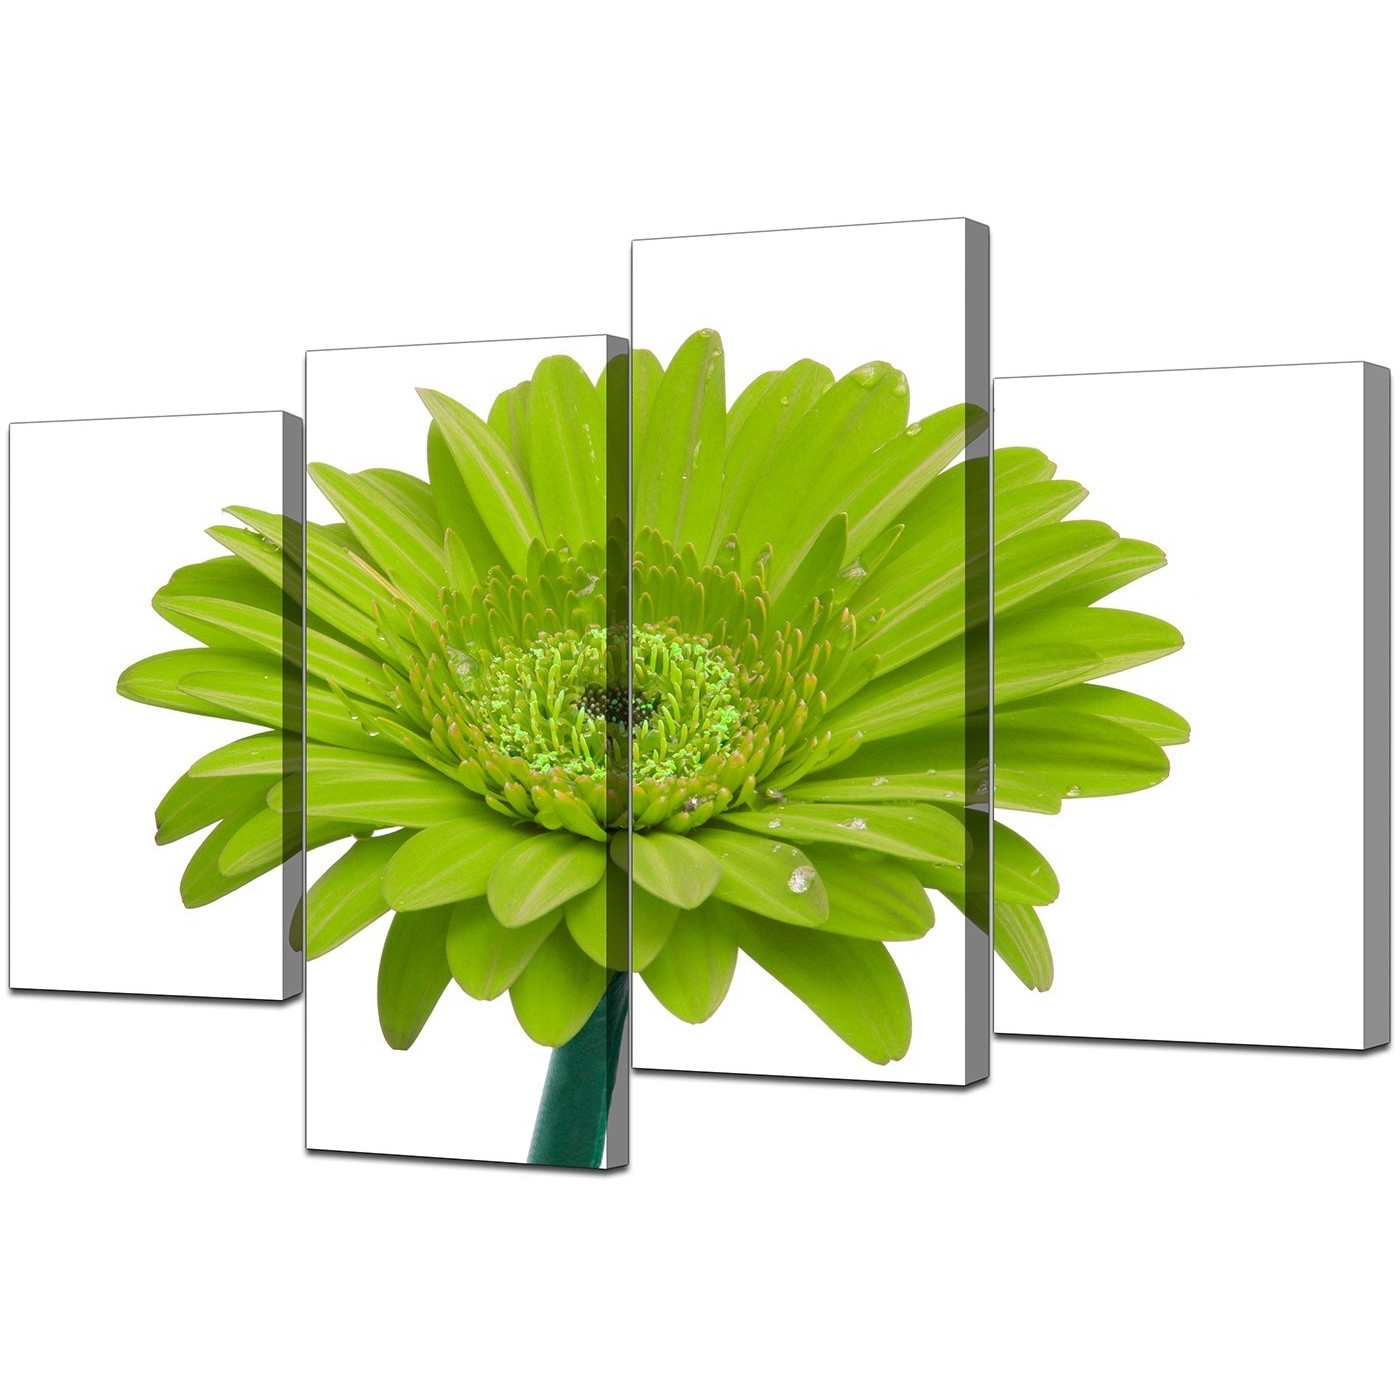 Green Wall Art Regarding Recent Canvas Wall Art Of Flower In Lime Green For Your Living Room (Gallery 9 of 15)